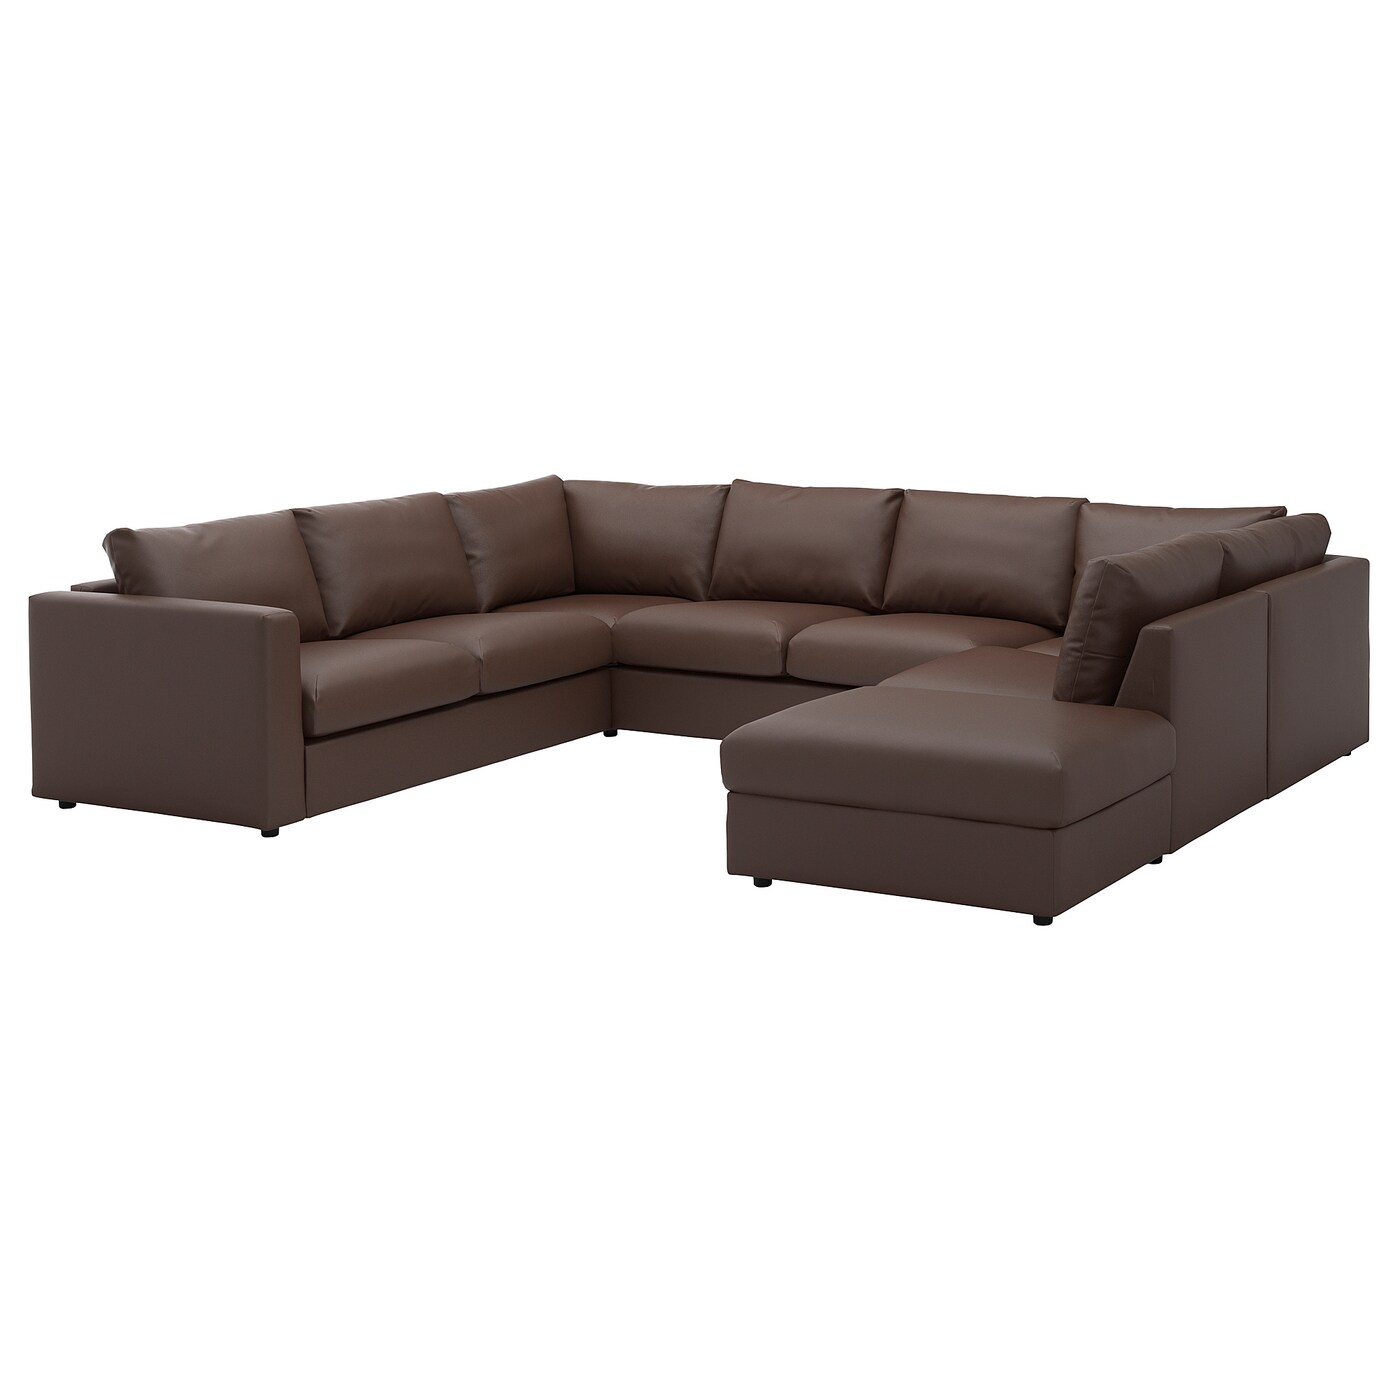 U Form Sofa Ikea Vimle U Shaped Sofa 6 Seat With Open End Farsta Dark